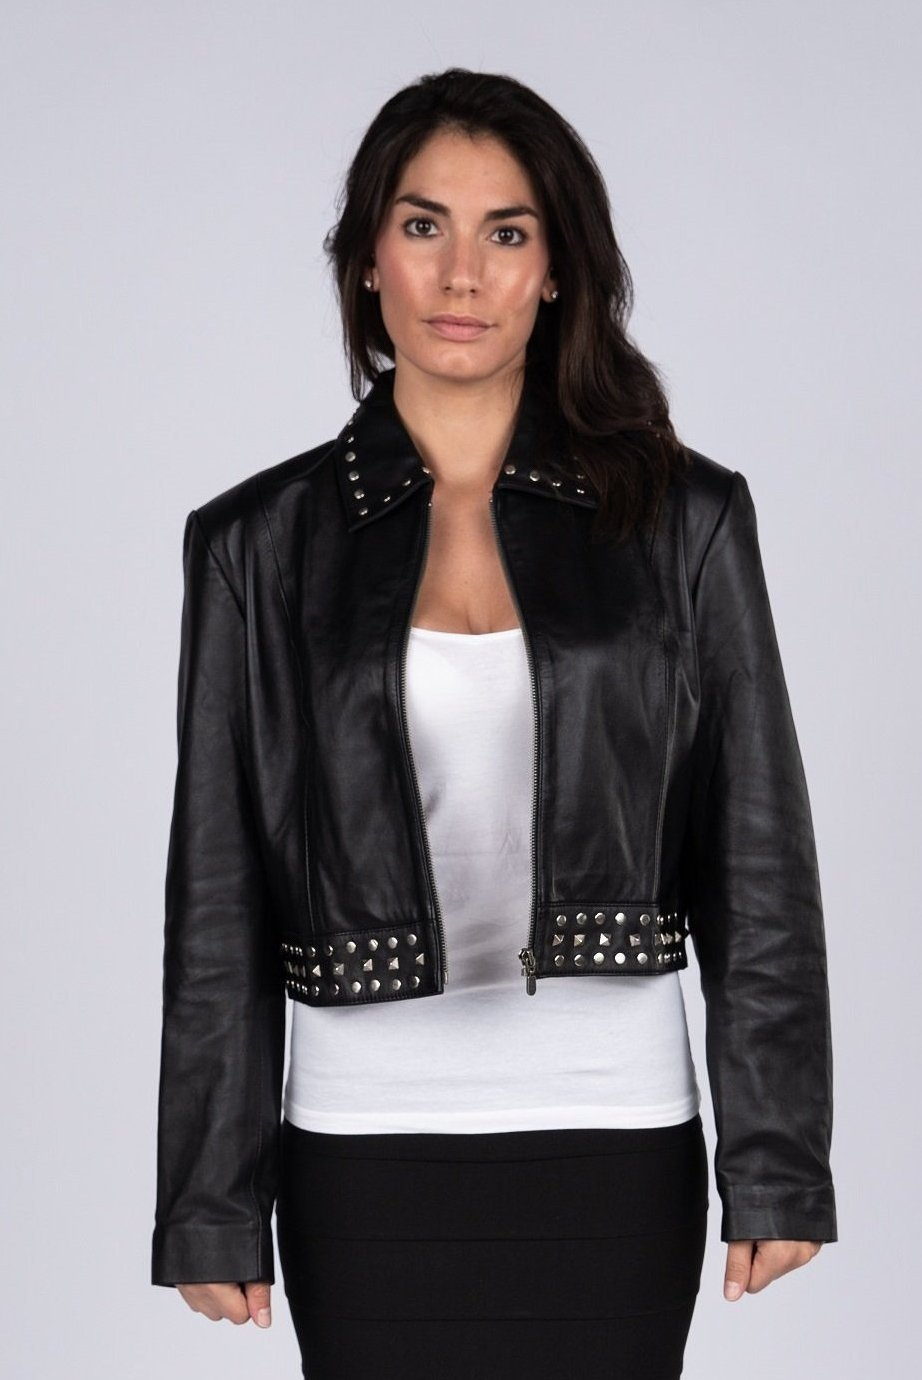 Ladies Sexy Bolero Leather Jacket with Rivets-Womens Leather Jacket-Fadcloset-XS-Black-FADCLOSET CA